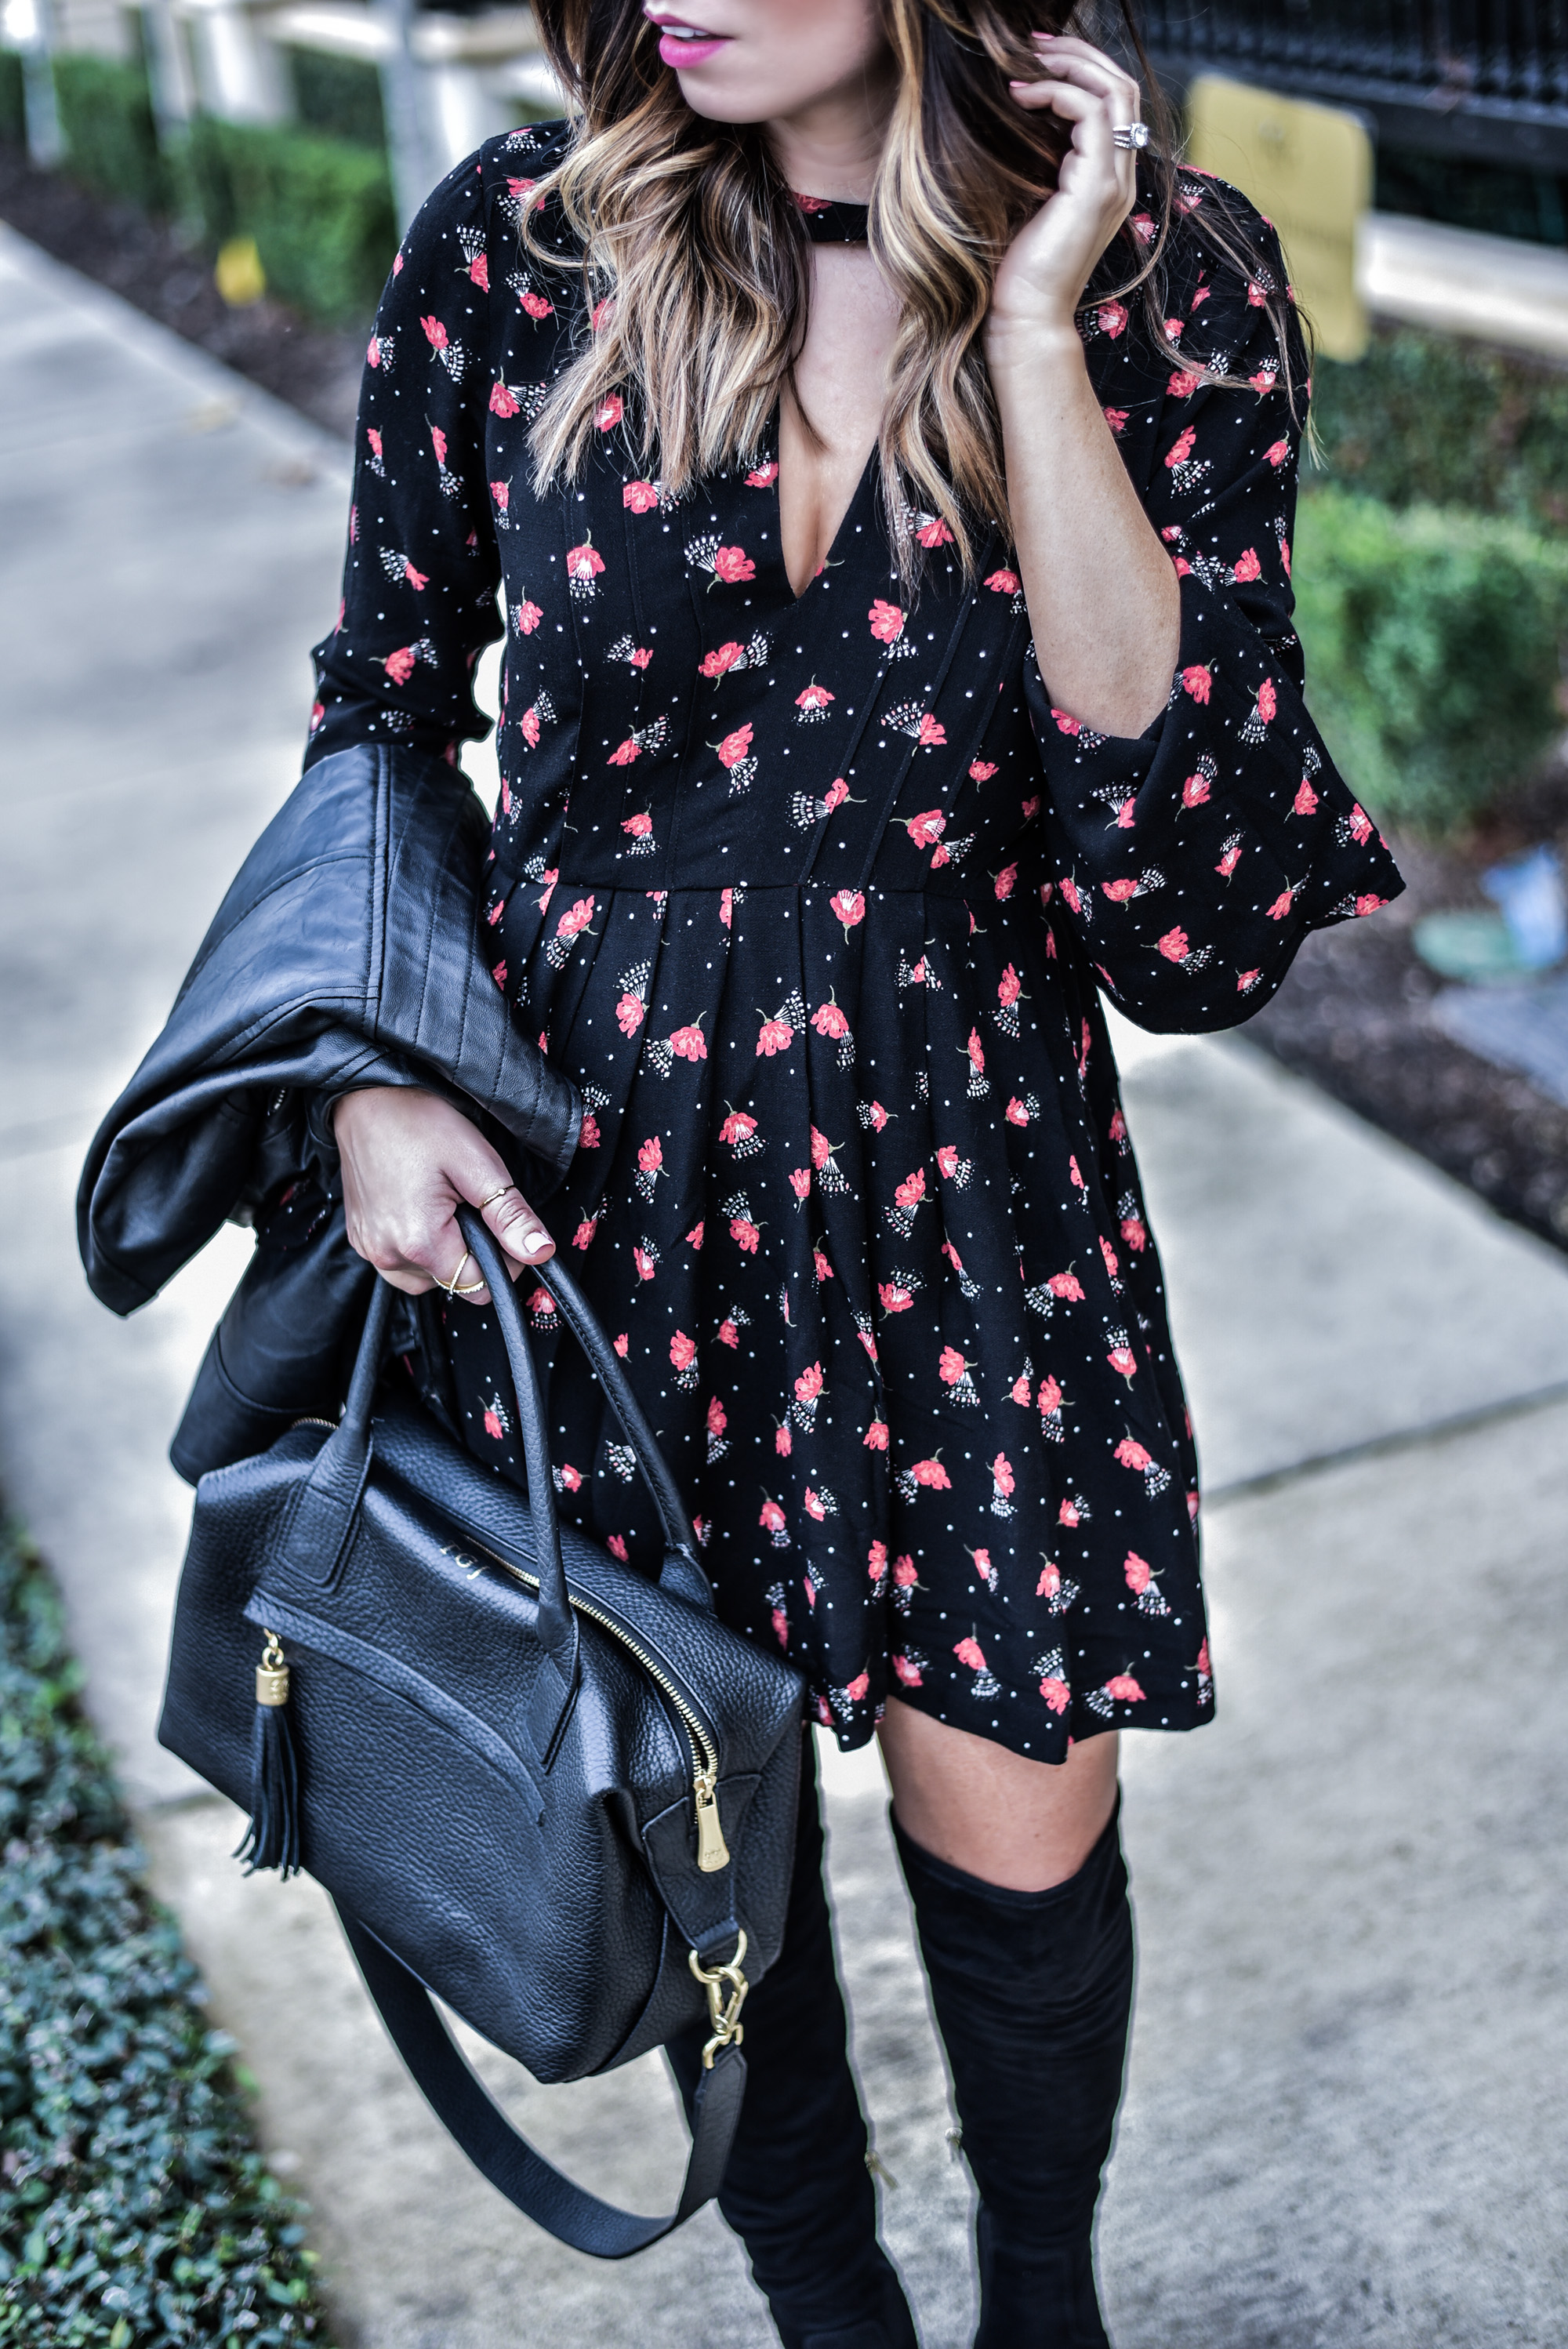 Tiffany Jais, Houston style blogger and writer of the fashion blog Flaunt and Center wearing a floral printed mini dress by Free People and black Ivanka Trump over the knee boots